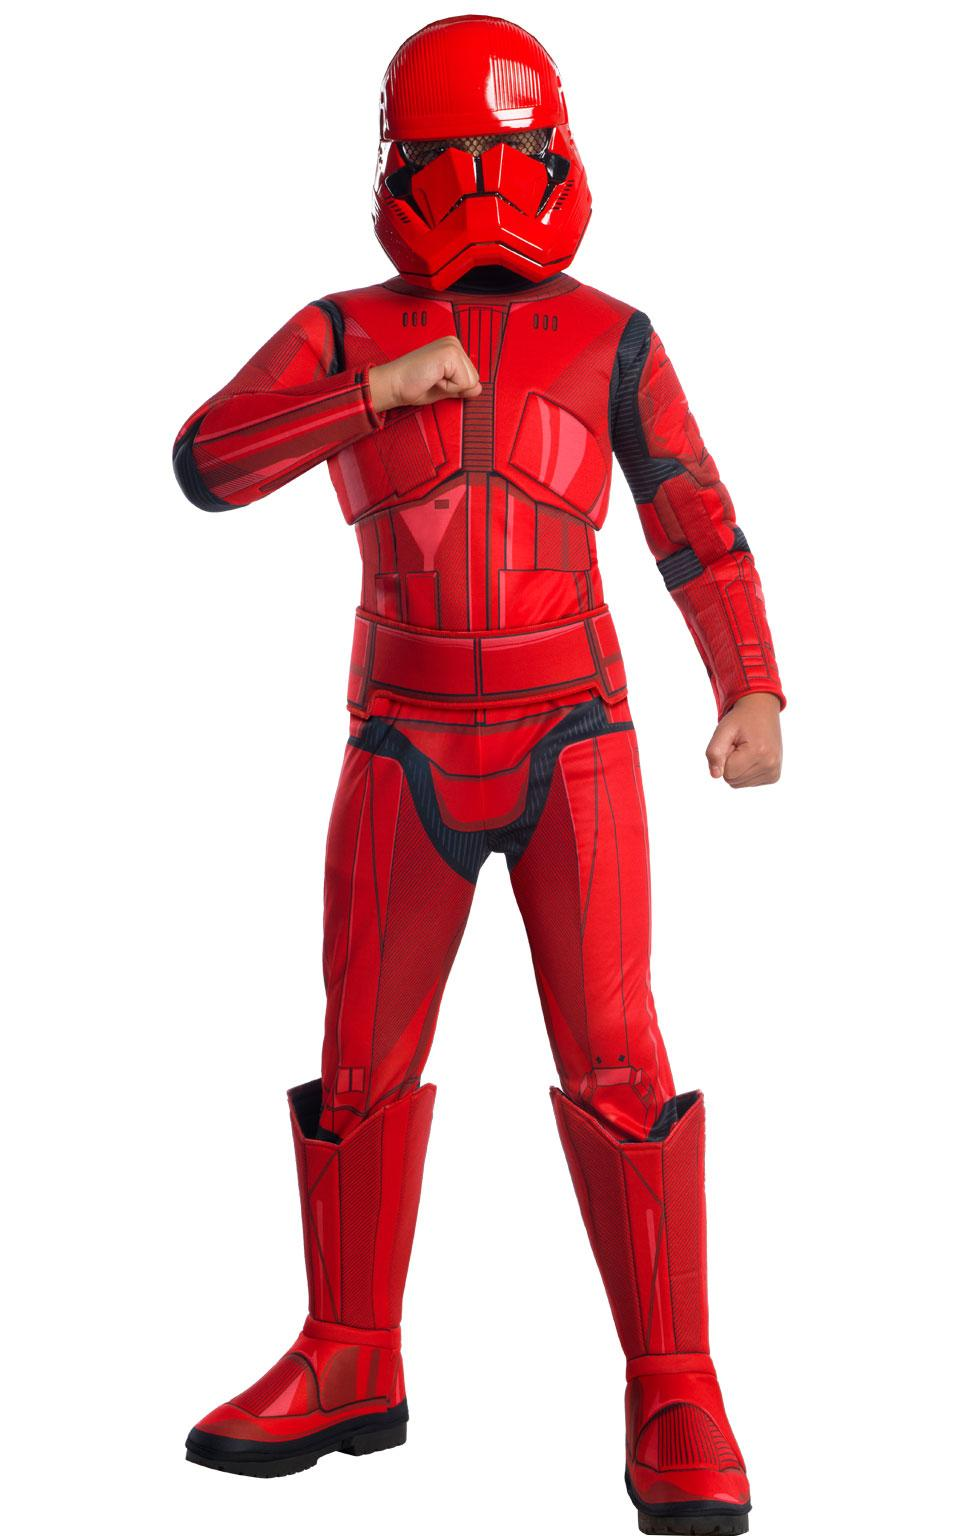 Kids Deluxe Red Stormtrooper Costume